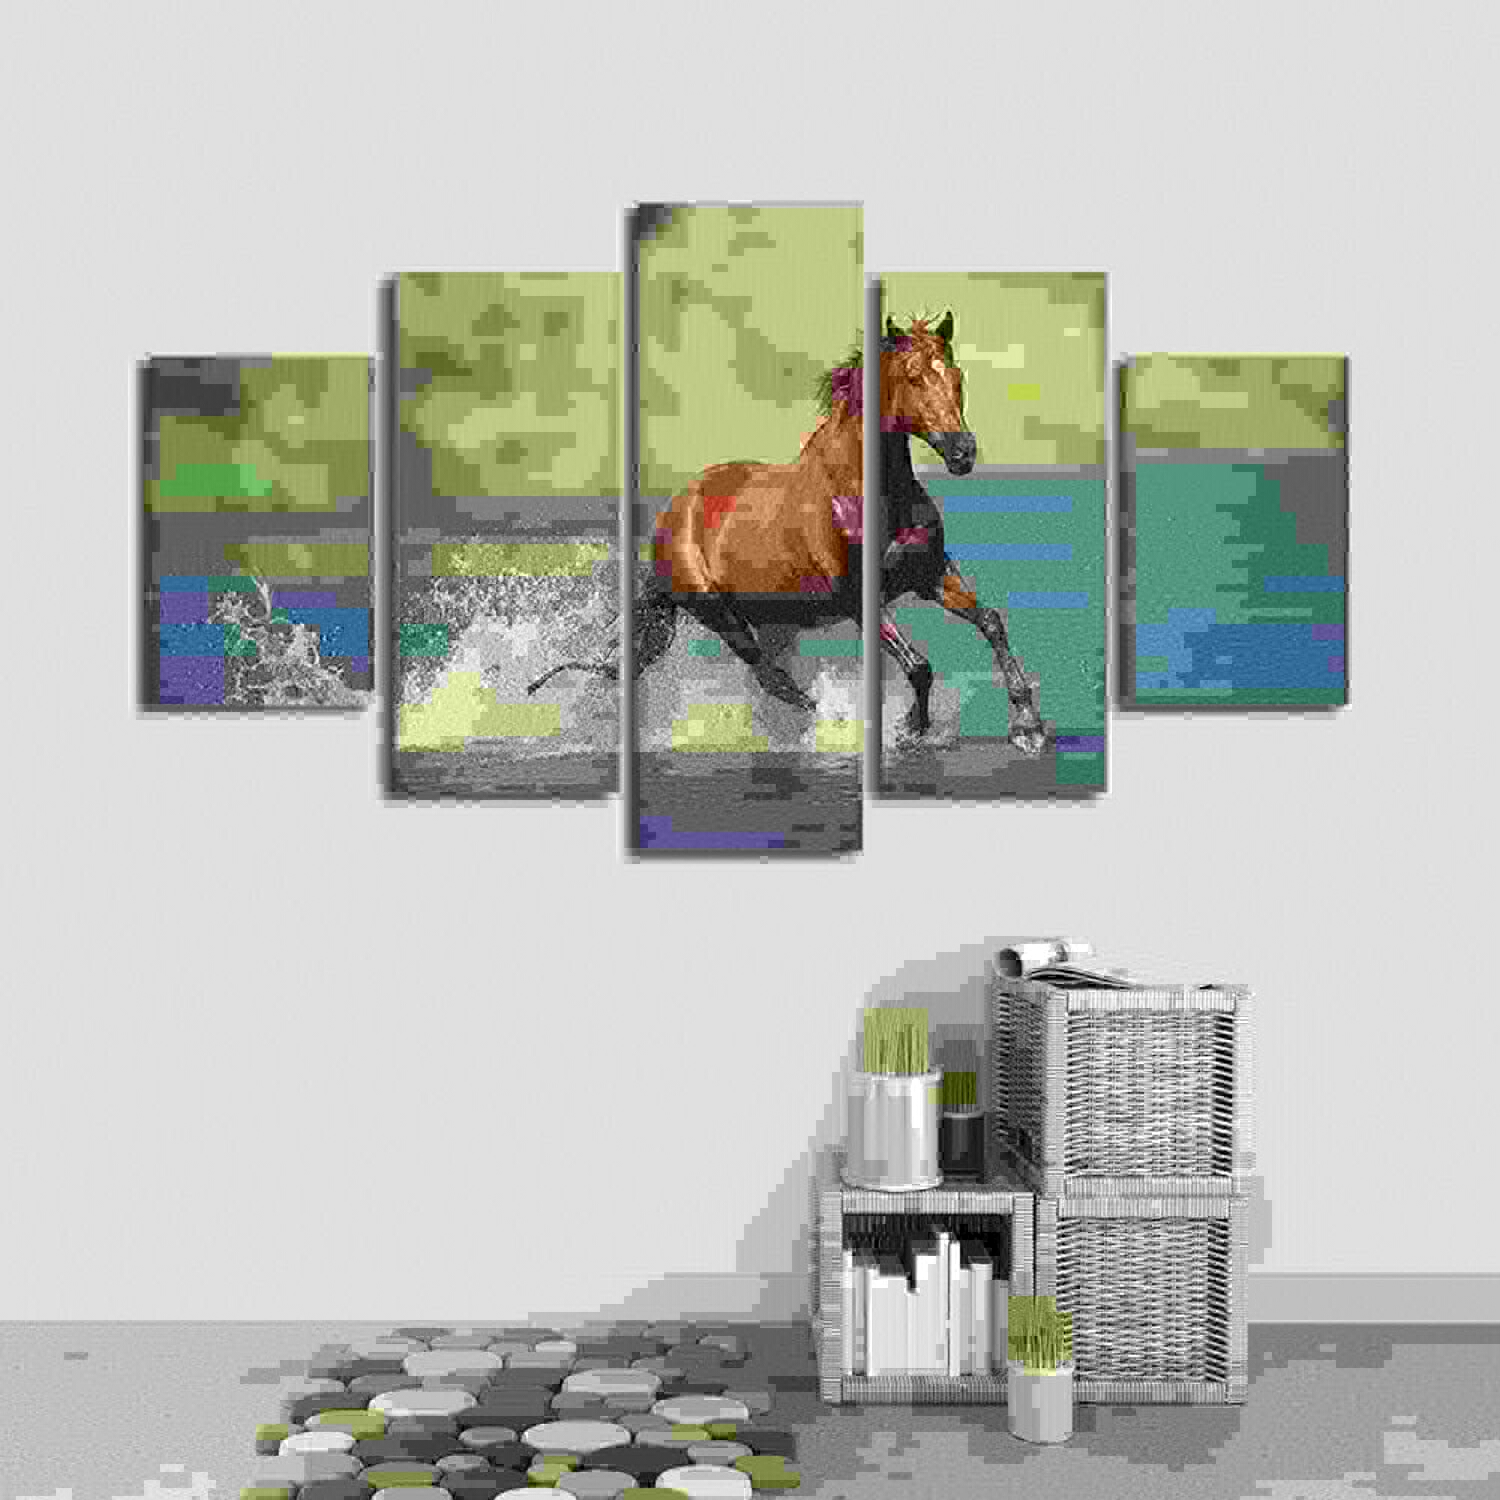 servicio considerado YUGUO 5 Lienzos Posters Modular Modular Modular Canvas Pictures 5 Pieces Animals Horse River Landscape Paintings Frame Decor Home Living Room Wall Art HD Print  venta de ofertas